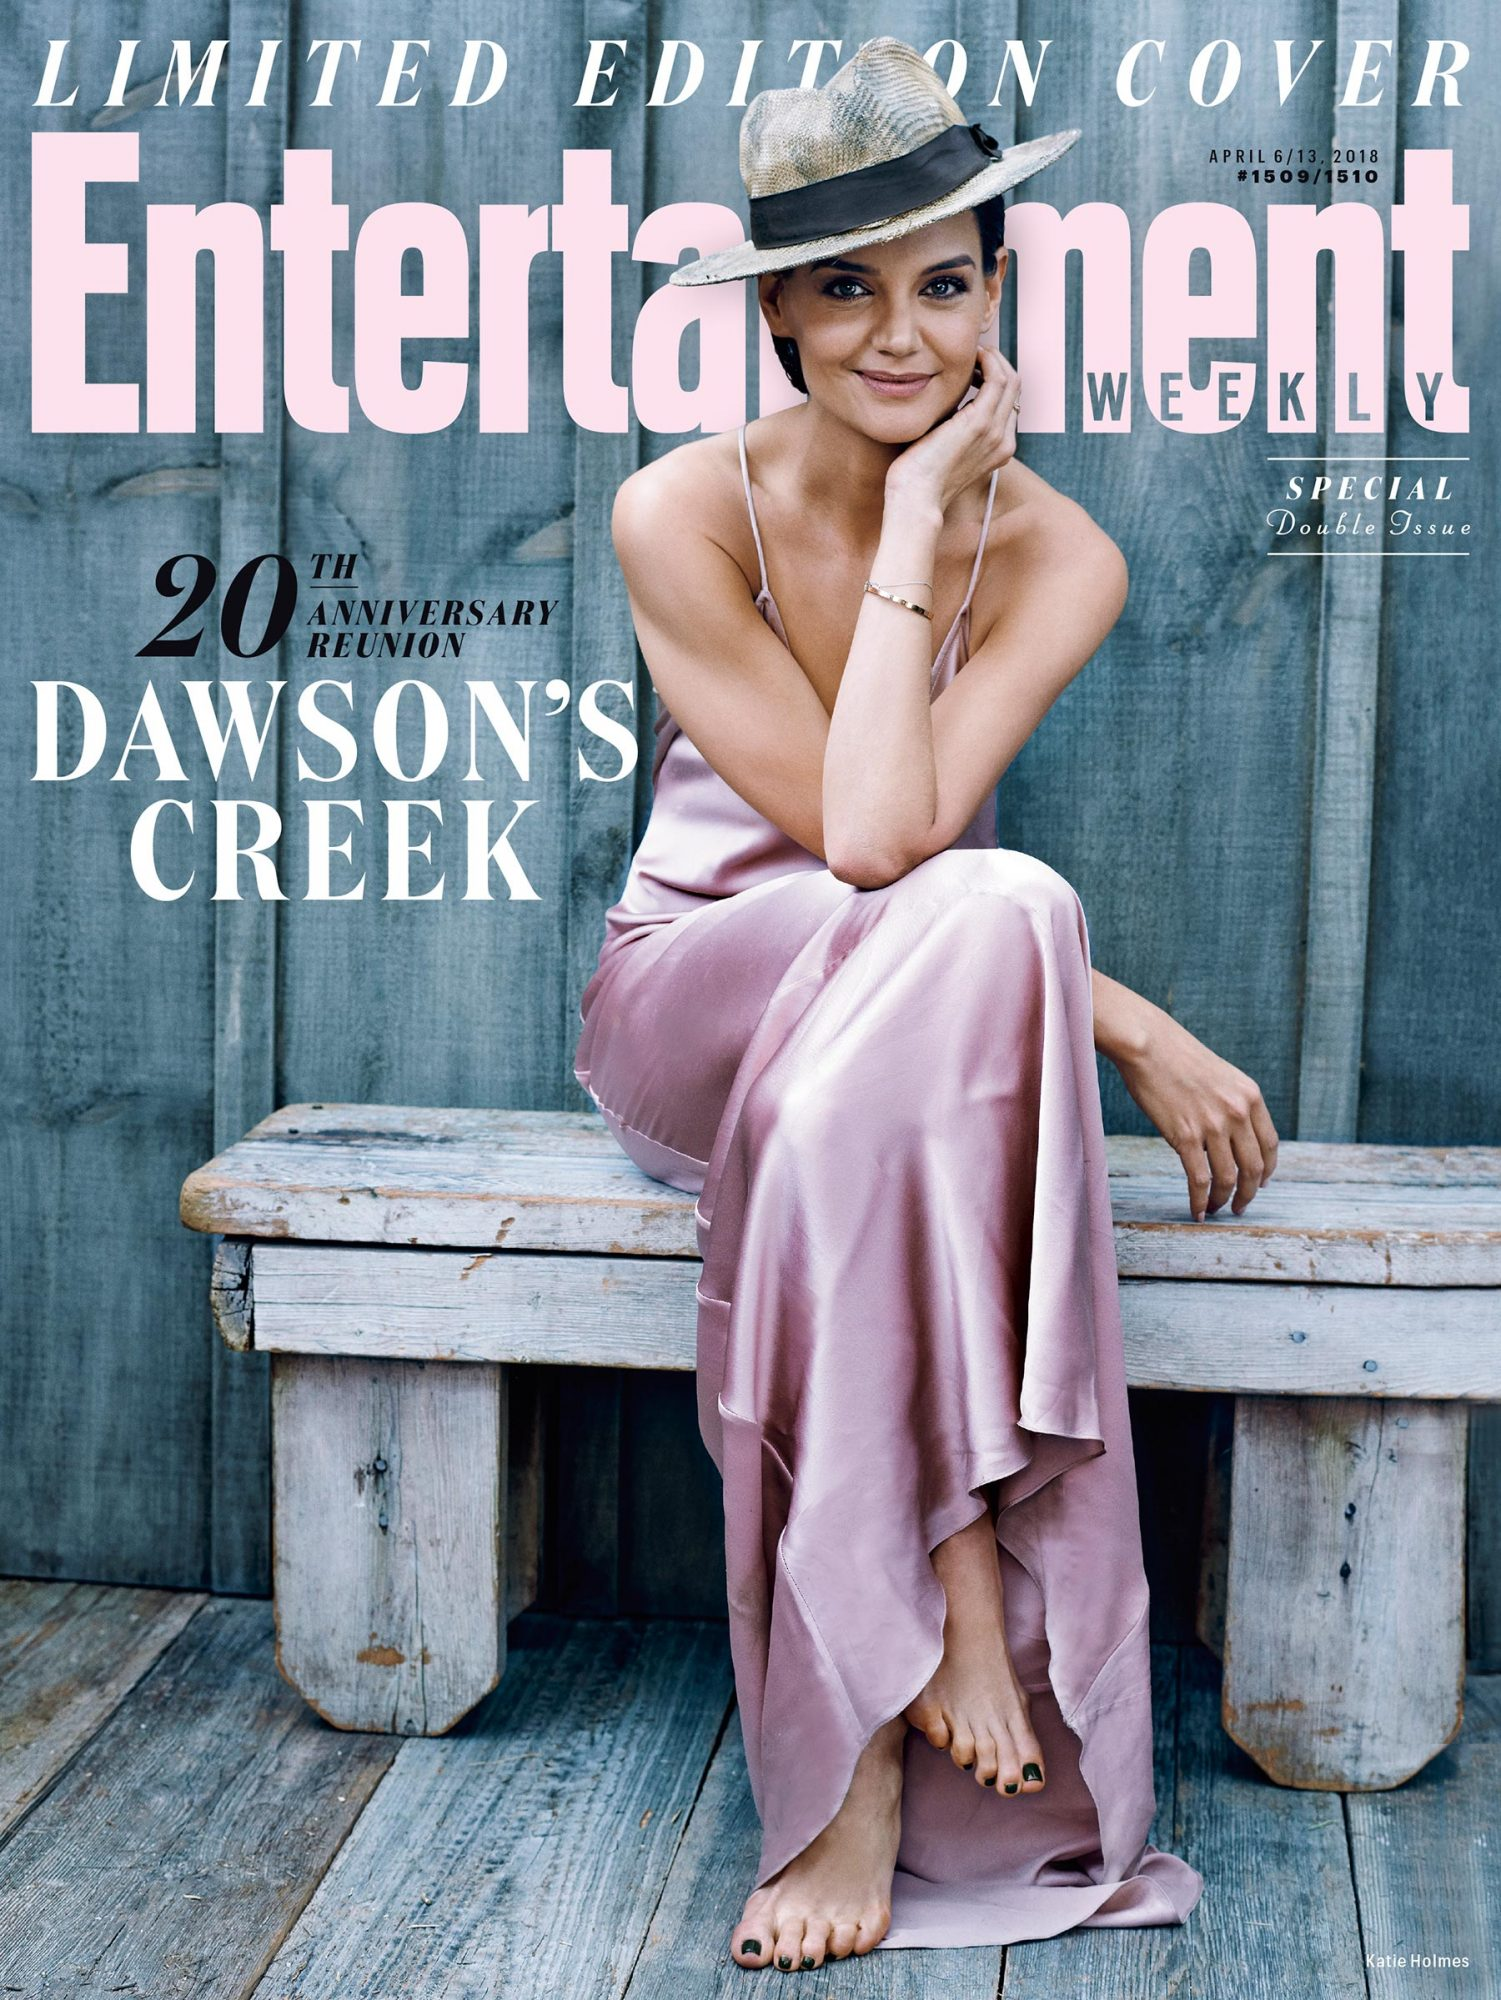 Katie Holmes cover